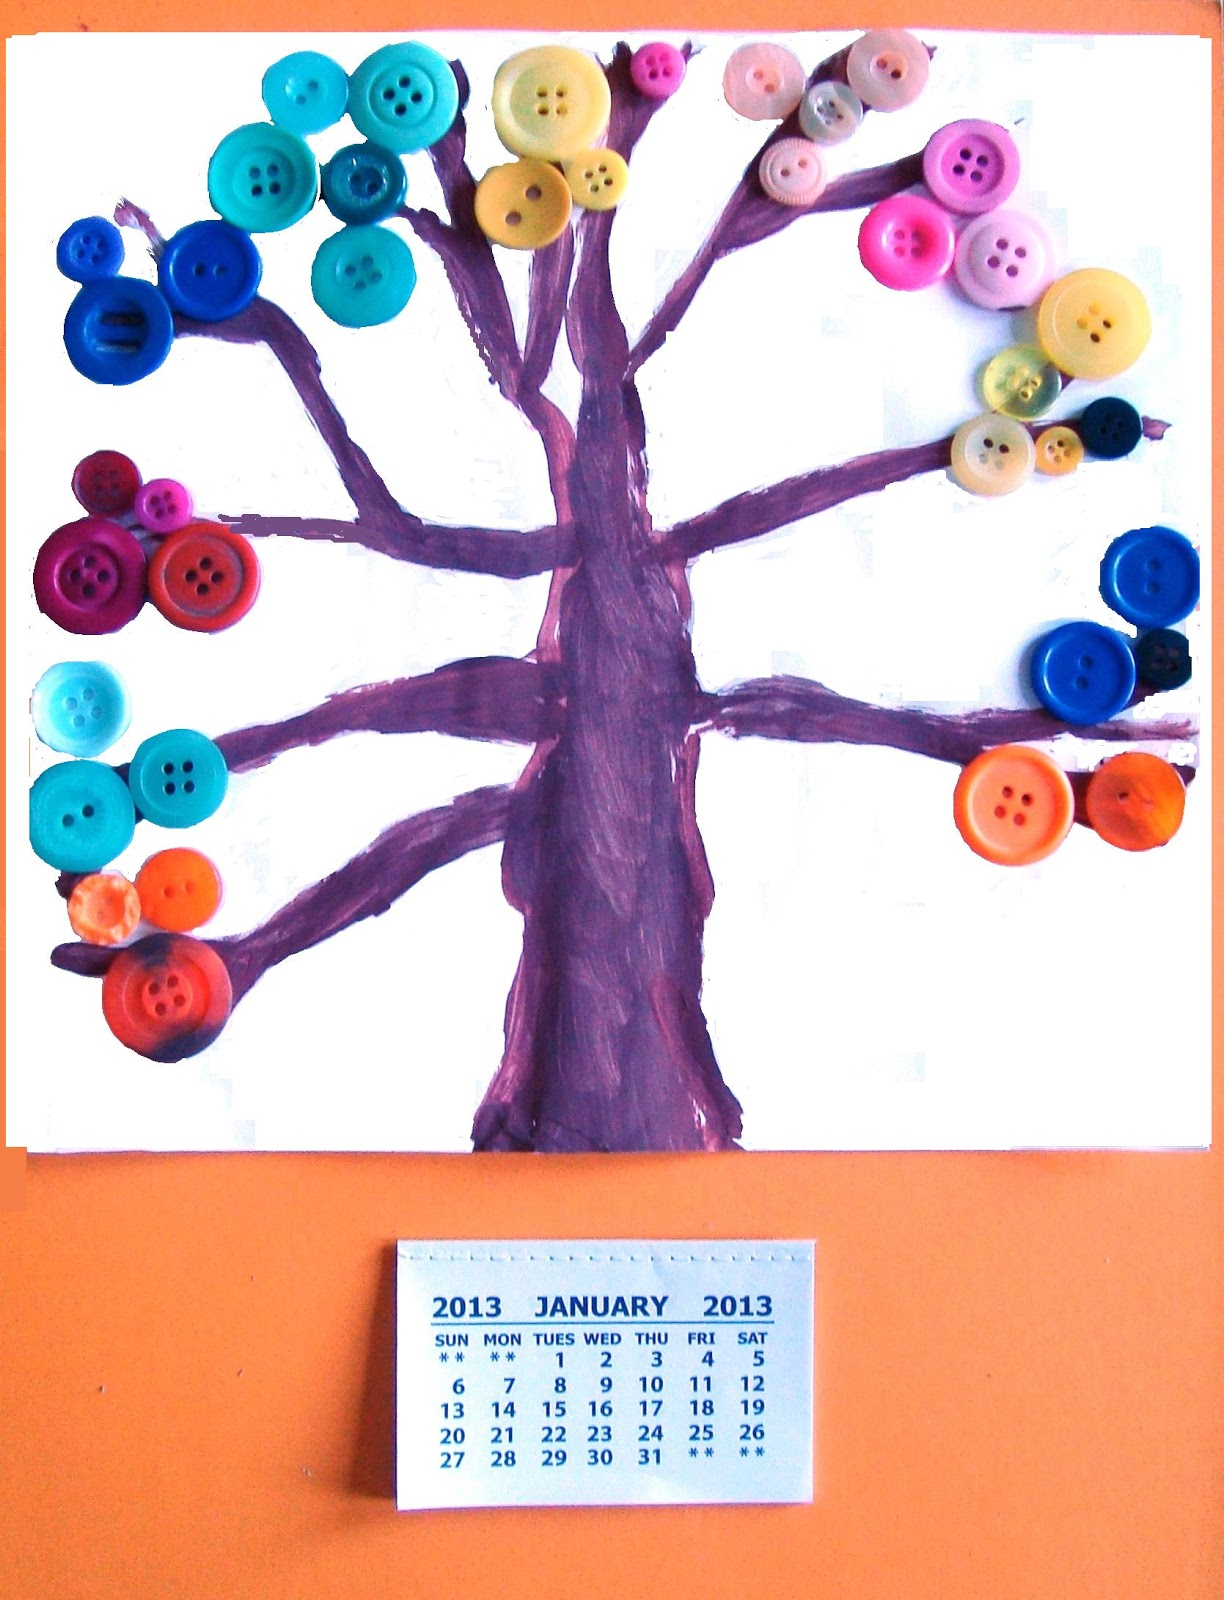 Make Your Own Calendar Creations Make Your Own Ink Daubers Happycardfactory Designs Rainbow Creations Art And Craft For Children Blog